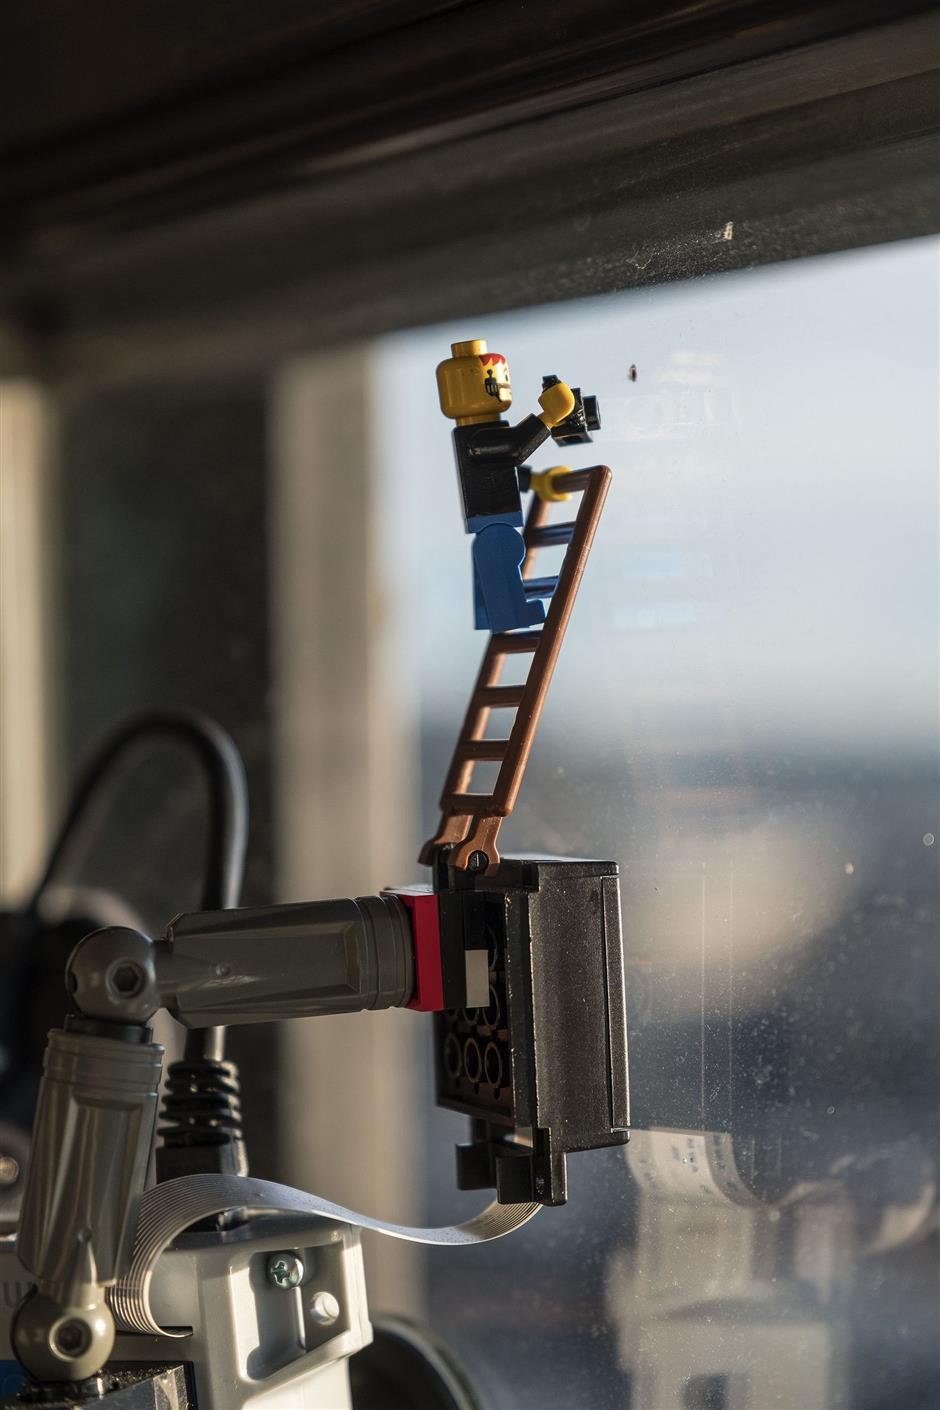 On top of Hussey's web cam is a Lego figure of a camera man on a ladder. From Alan Hussey's 19th floor window inside Smith Tower he gets an unobstructed view of sunset over Elliott Bay and the Olympic Mountains. He captures it on a web camera -- mounted here on his office window -- and posts it every day on Twitter at @GoldenHourSEA. (Dean Rutz/Seattle Times/TNS)